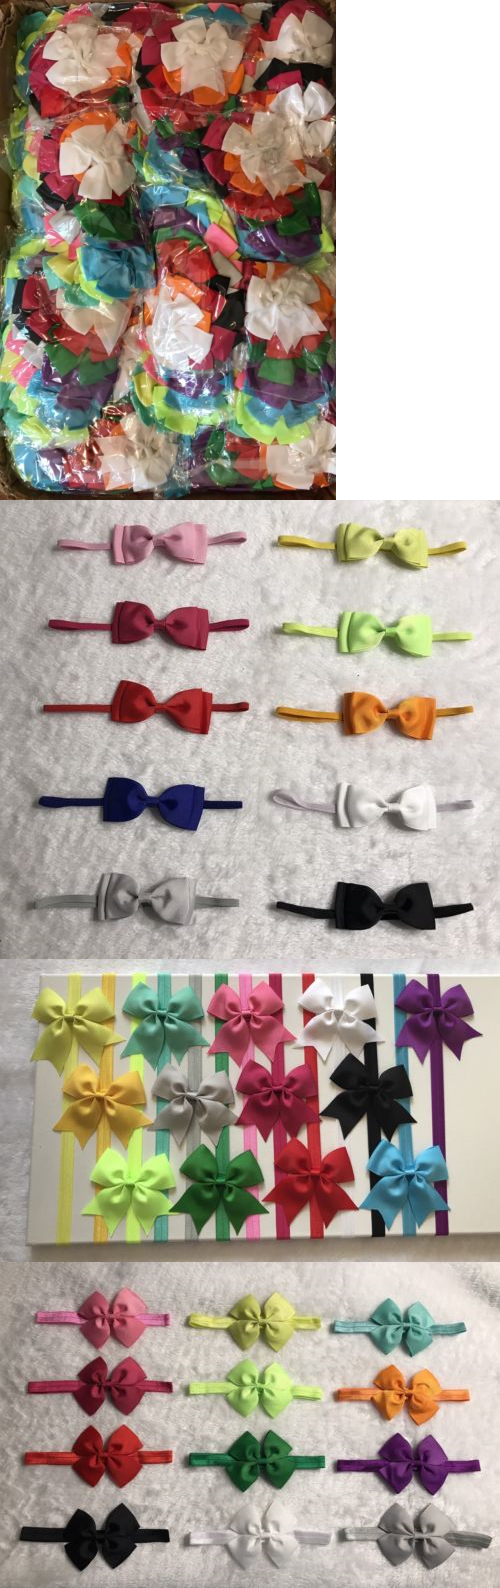 Hair accessories for babies ebay - Hair Accessories 57920 80 Pcs Mix Lot Kid Girl Baby Toddler Bow Headband Hair Band